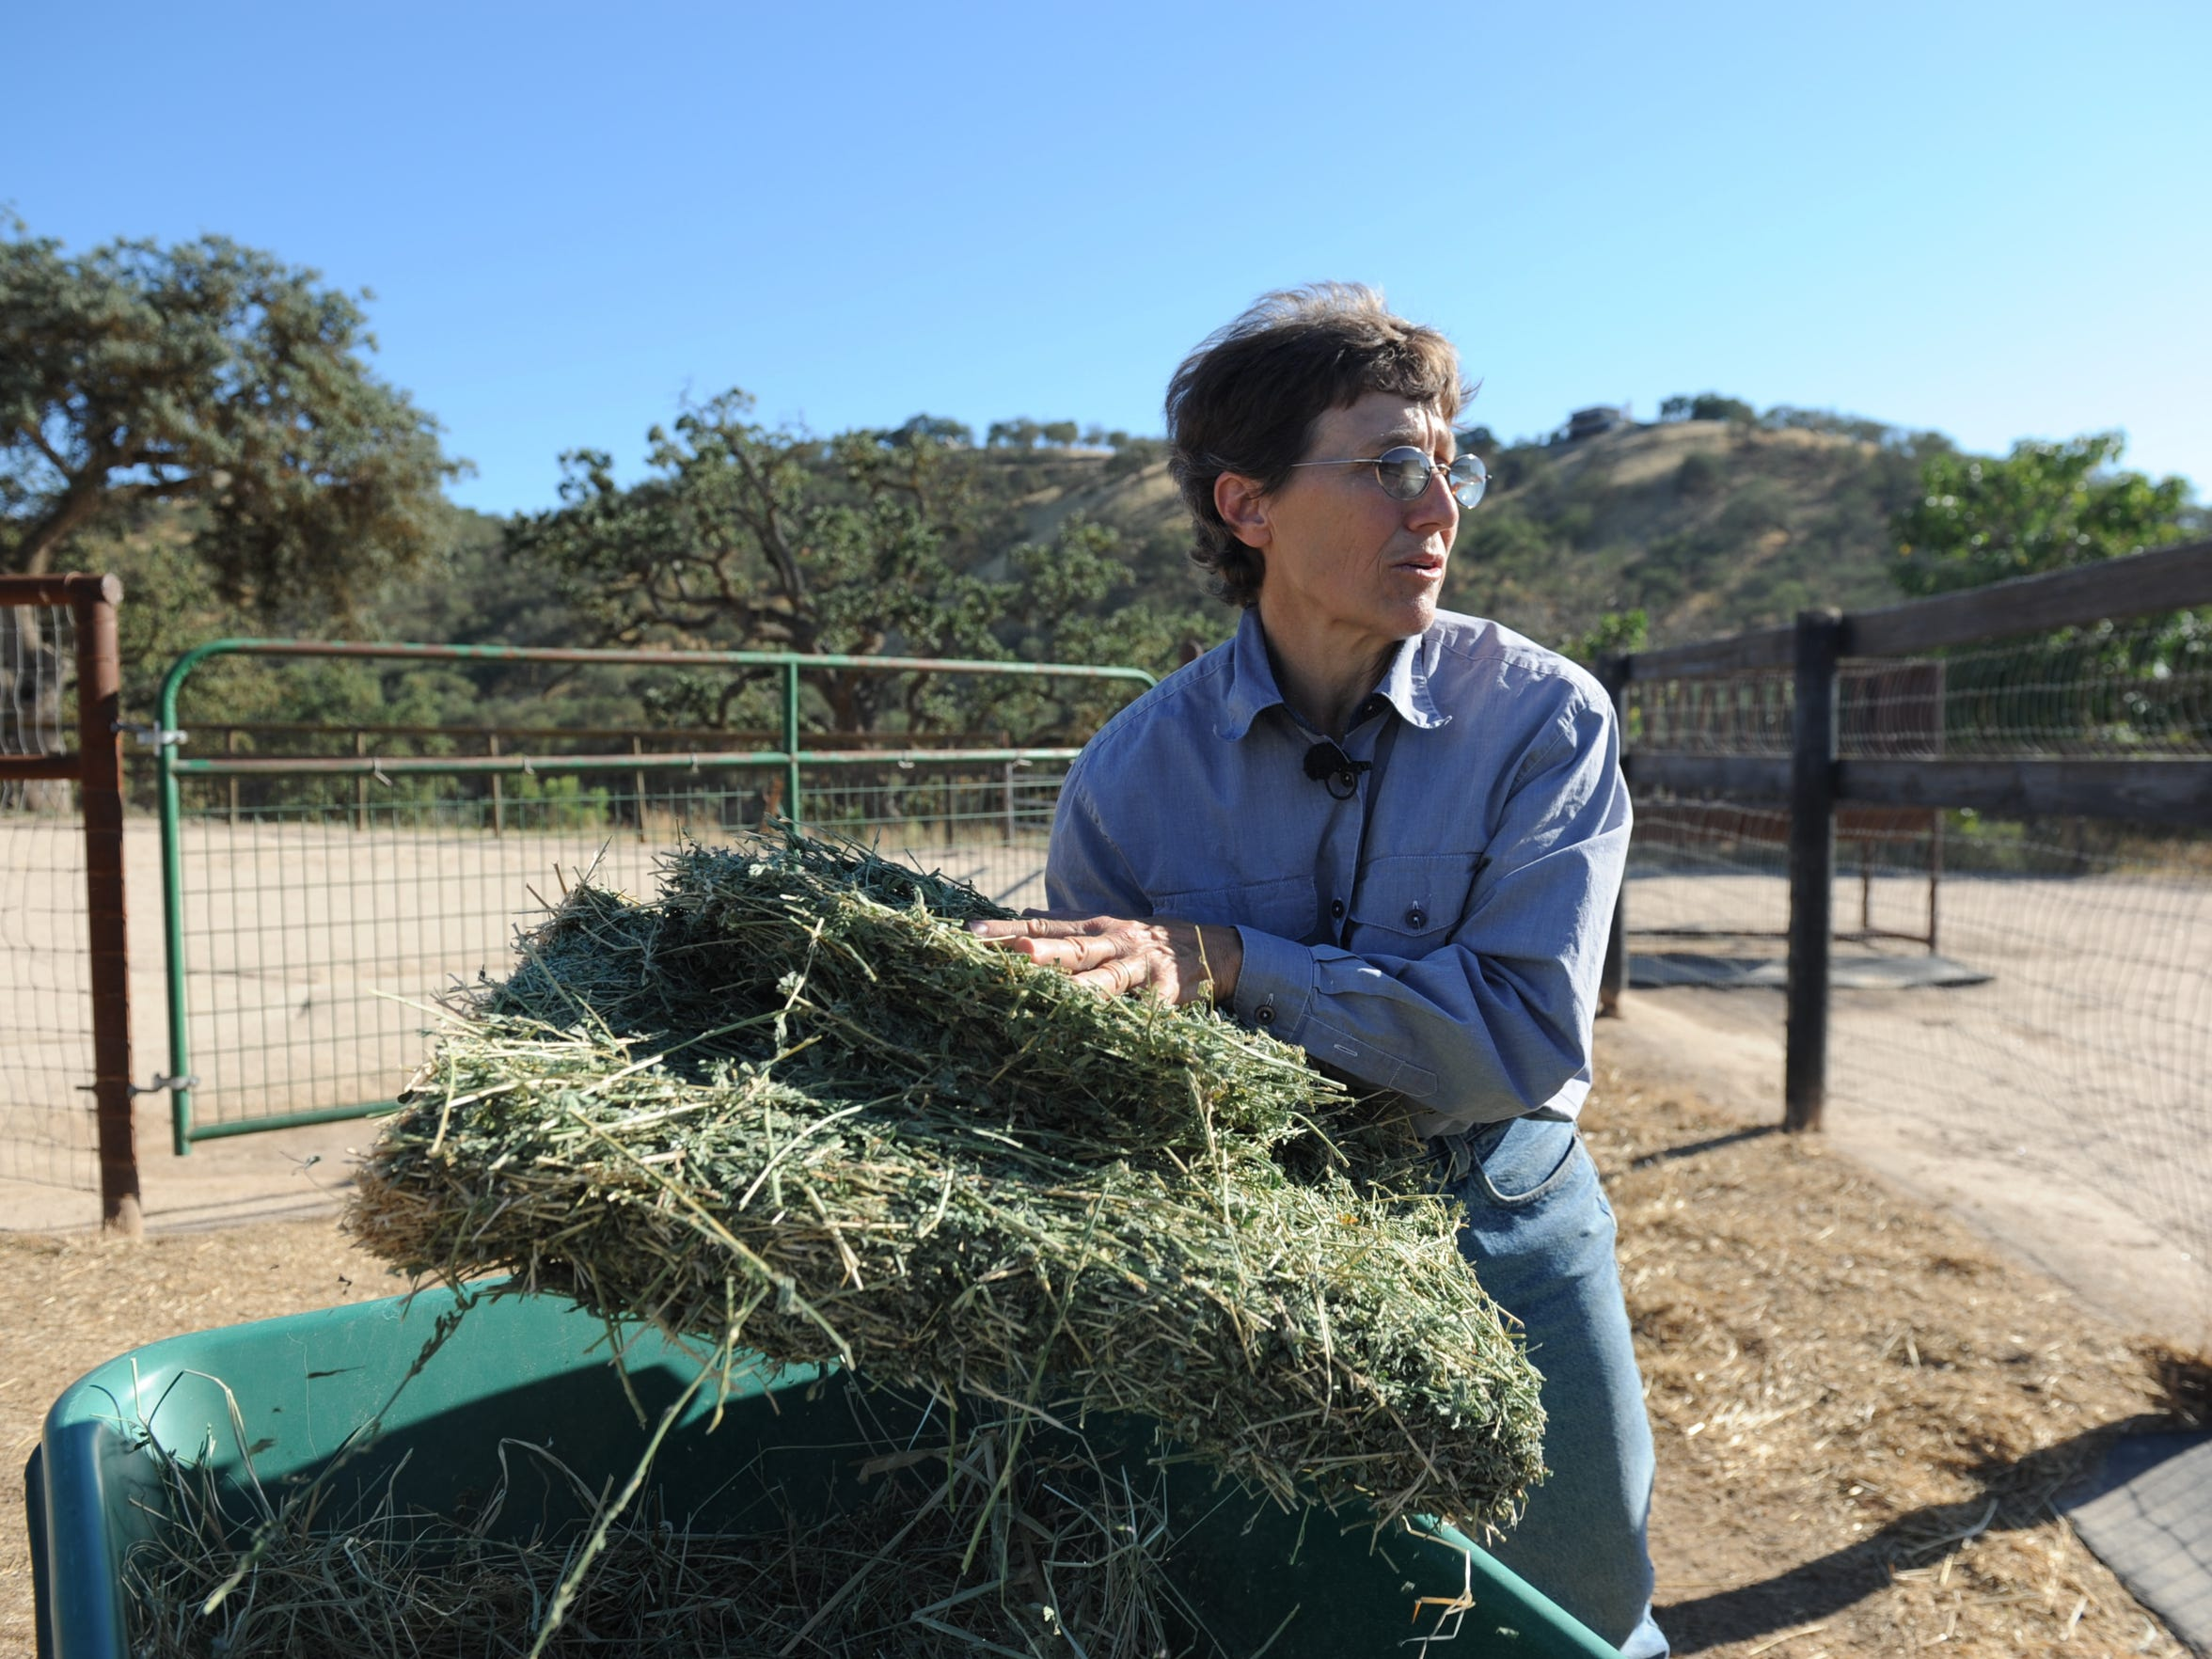 Laurie Gage carries hay to feed the horses at her farm